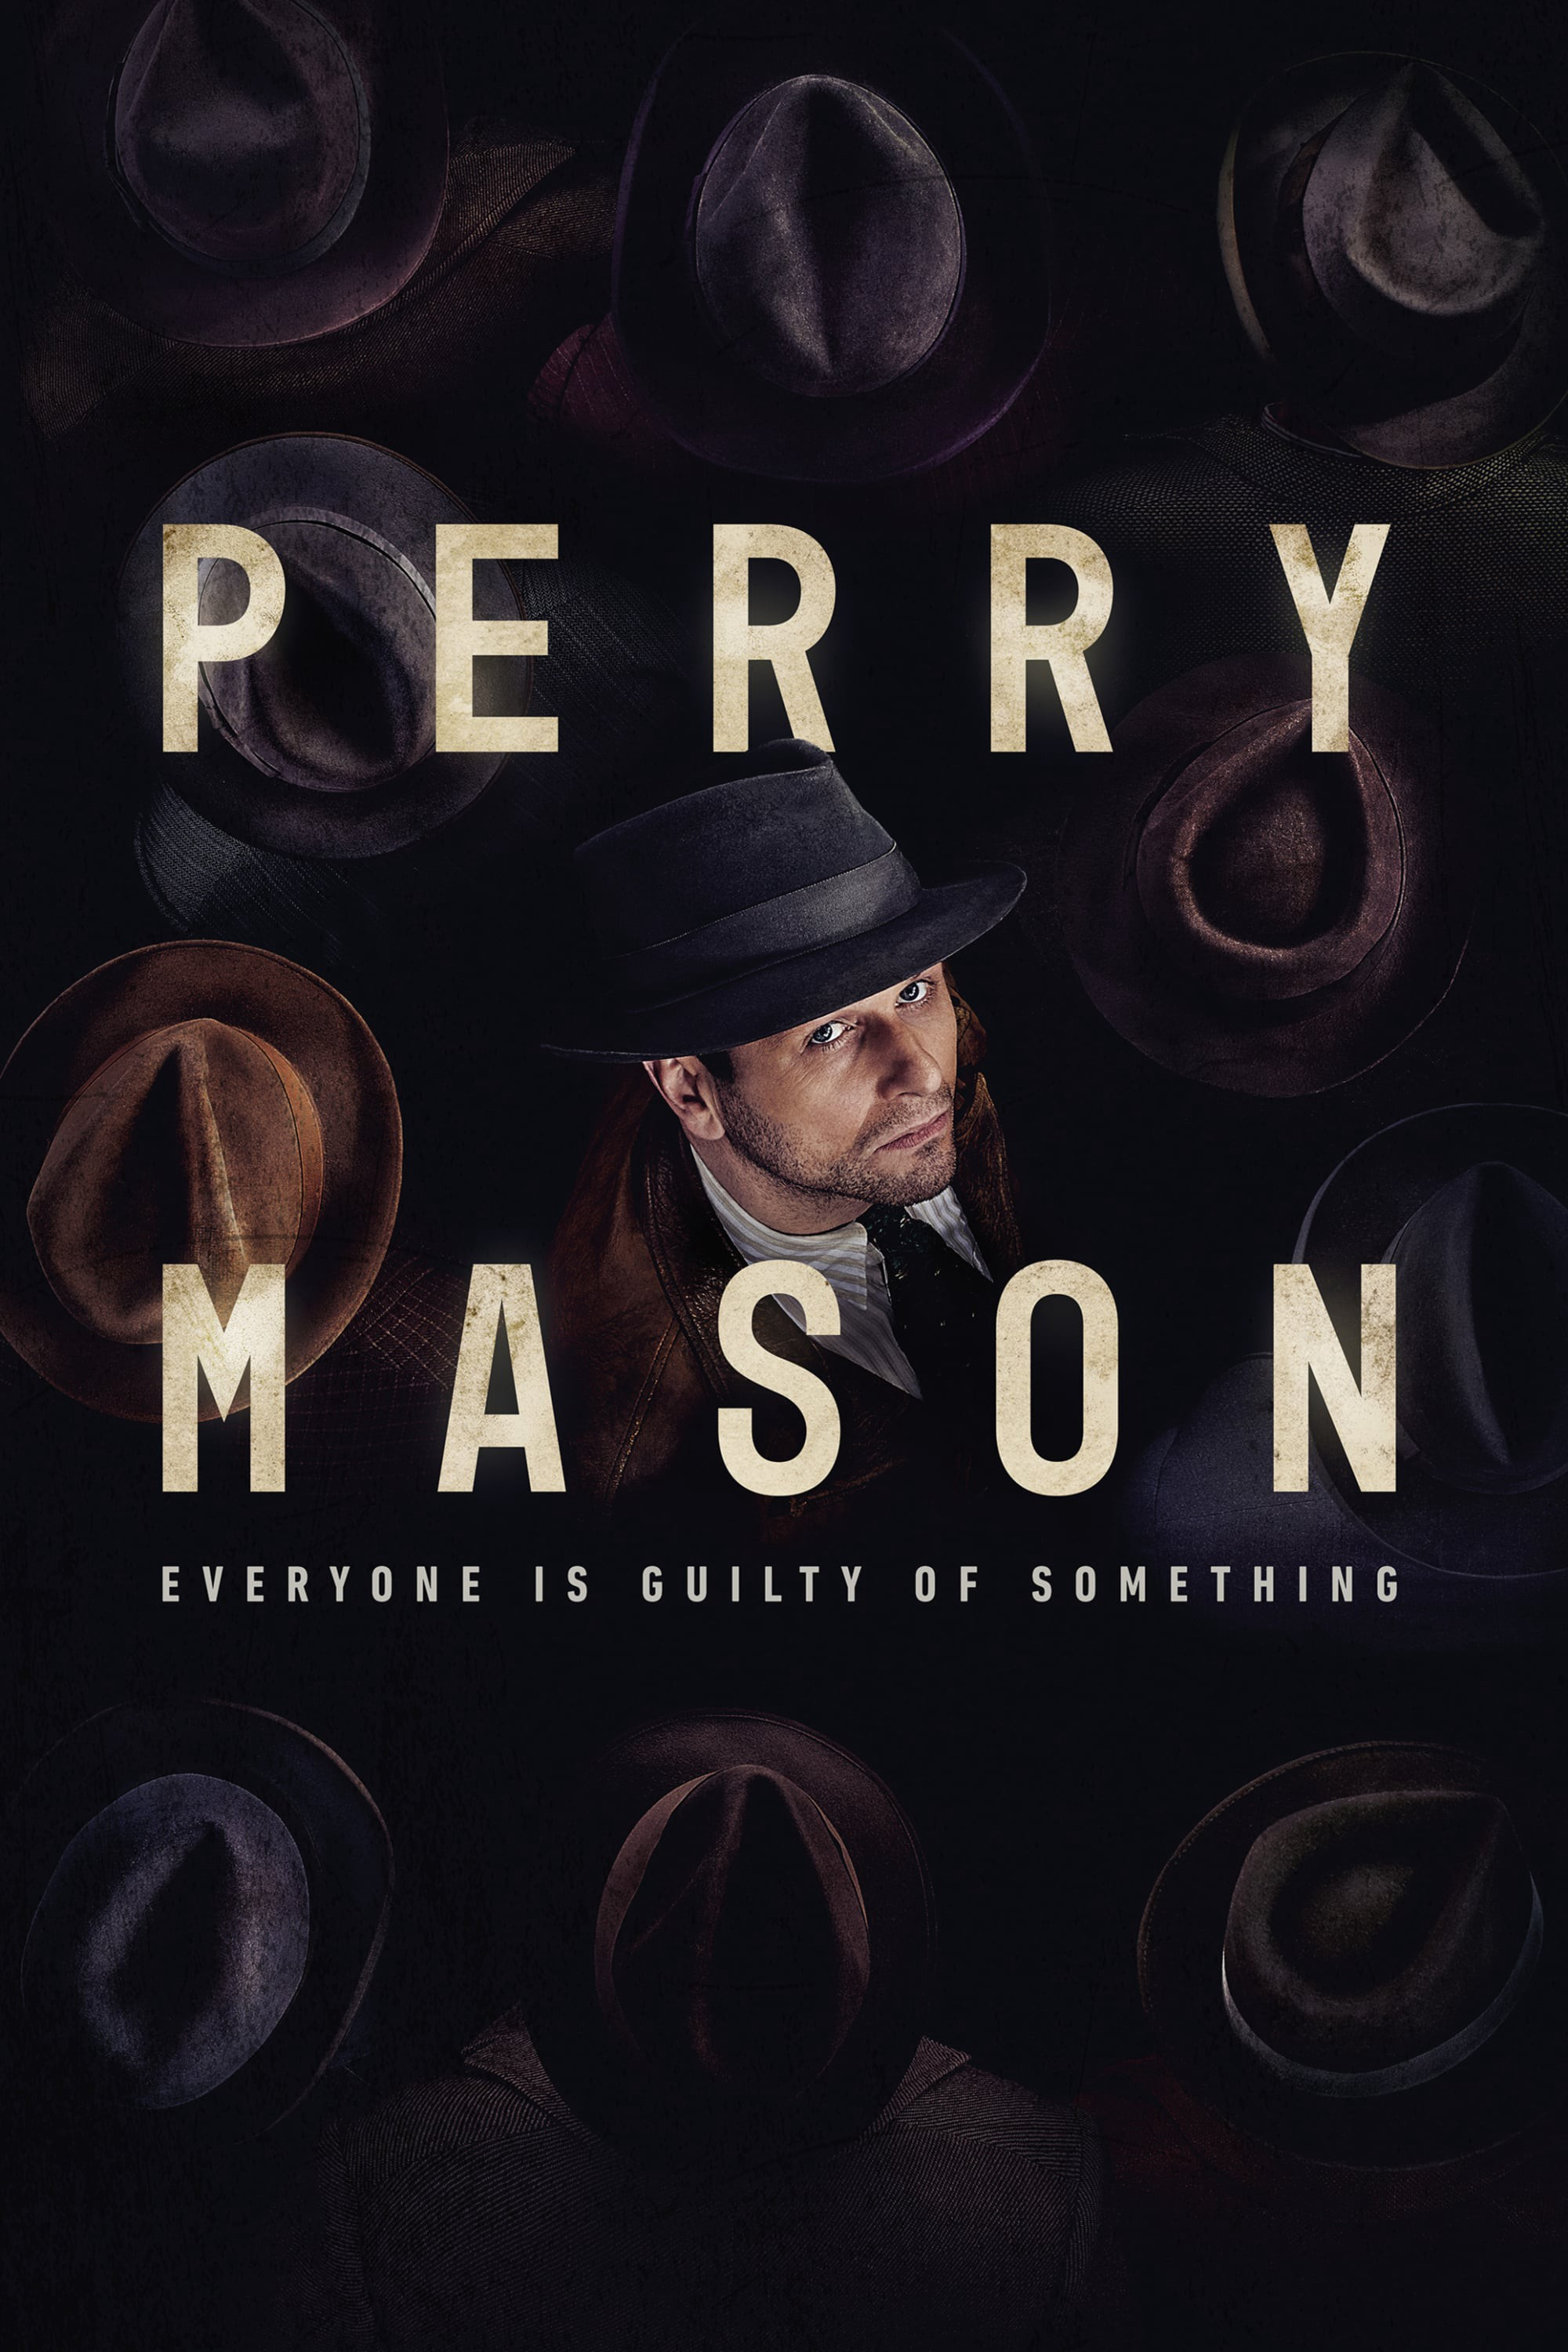 Perry Mason (2020) - Season 1 Episode 2 - Chapter Two